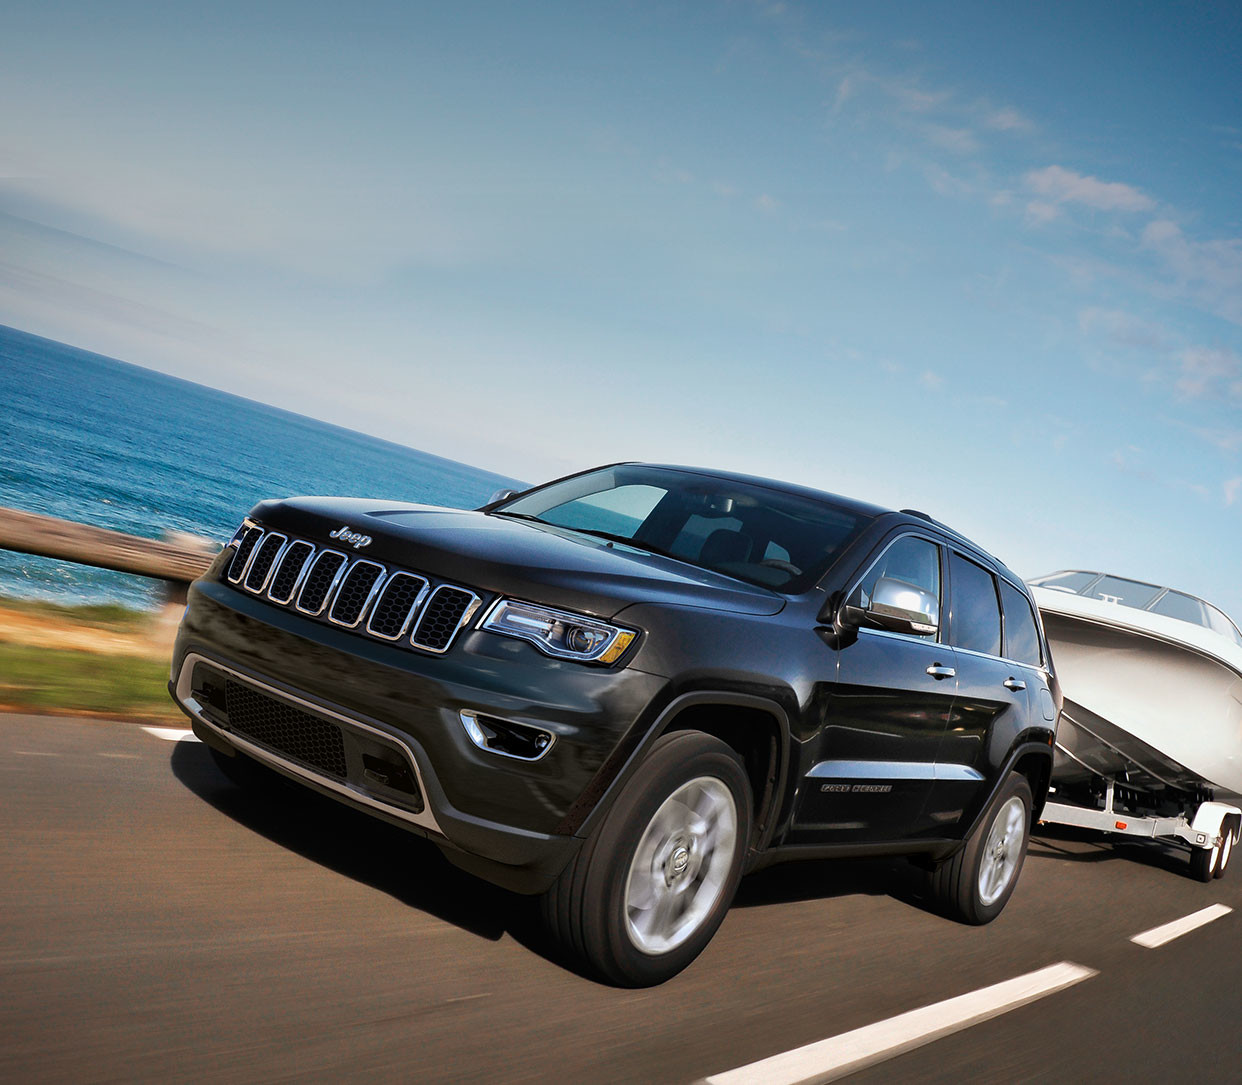 2019 Jeep Grand Cherokee - Most Awarded SUV Ever | Jeep Canada